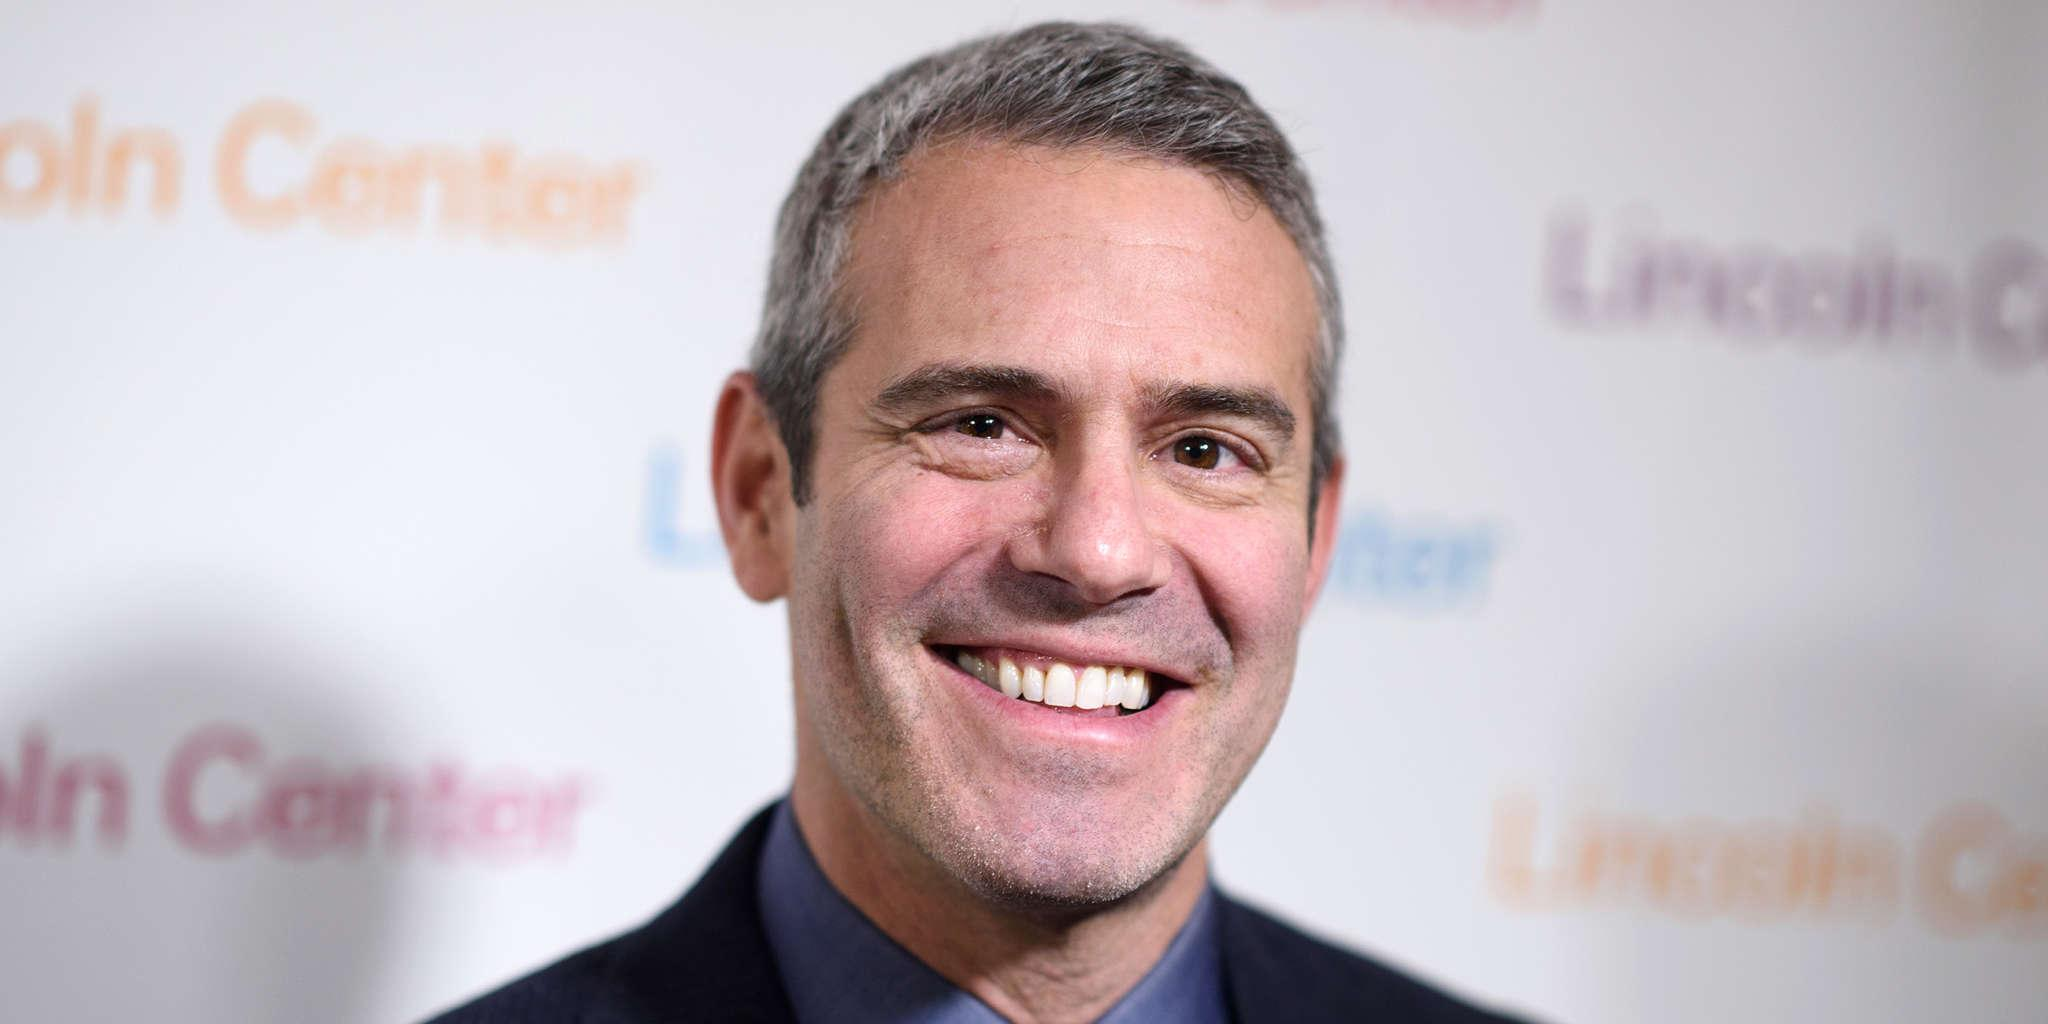 Andy Cohen Says RHOBH Will Be Going In 'New Directions'